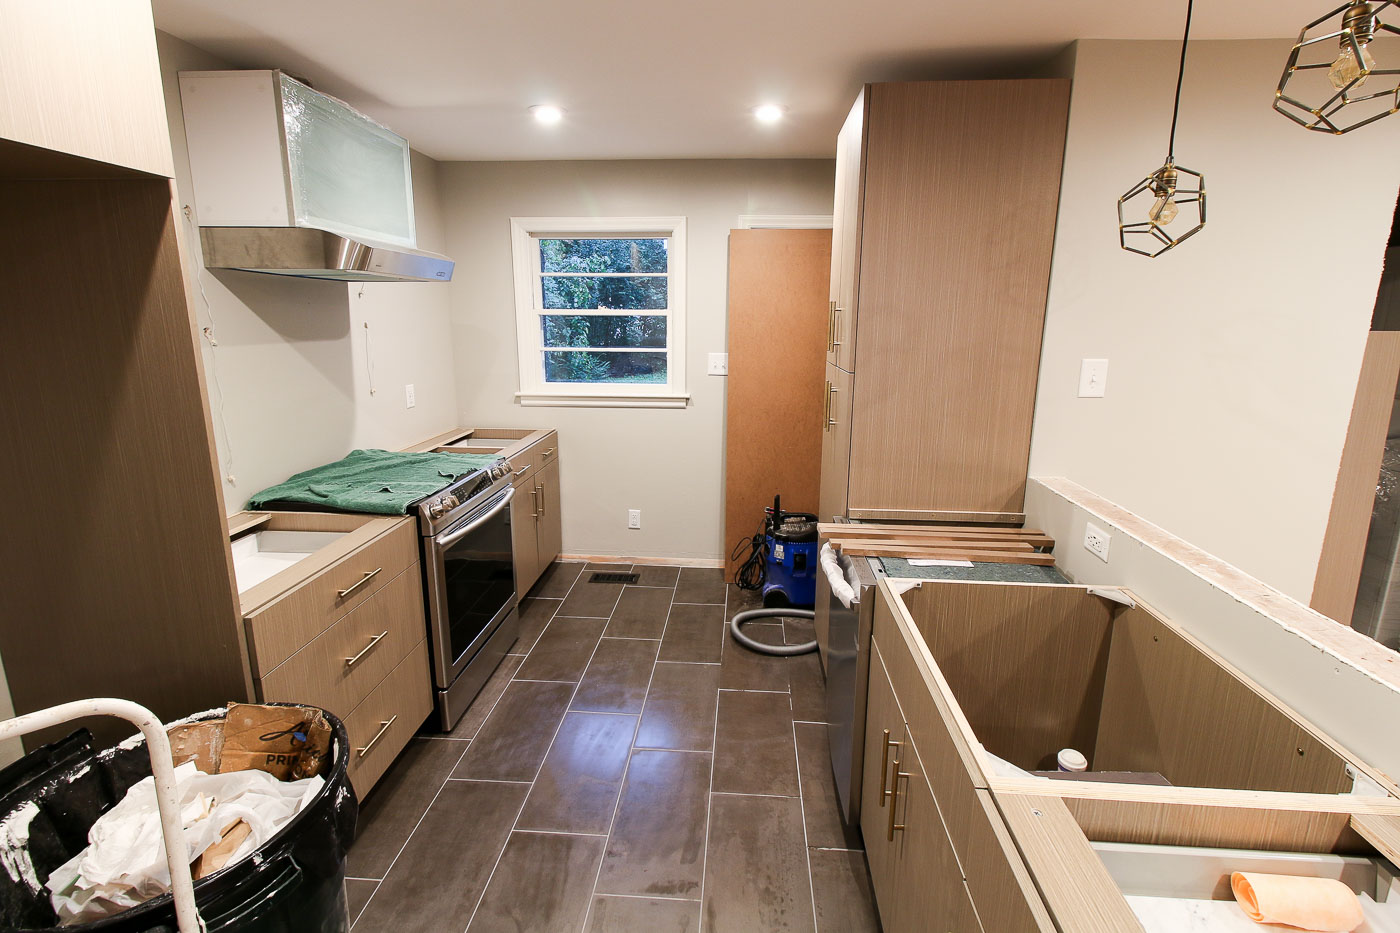 Millie's Remodel: Installing the Kitchen Cabinets - Pretty ...